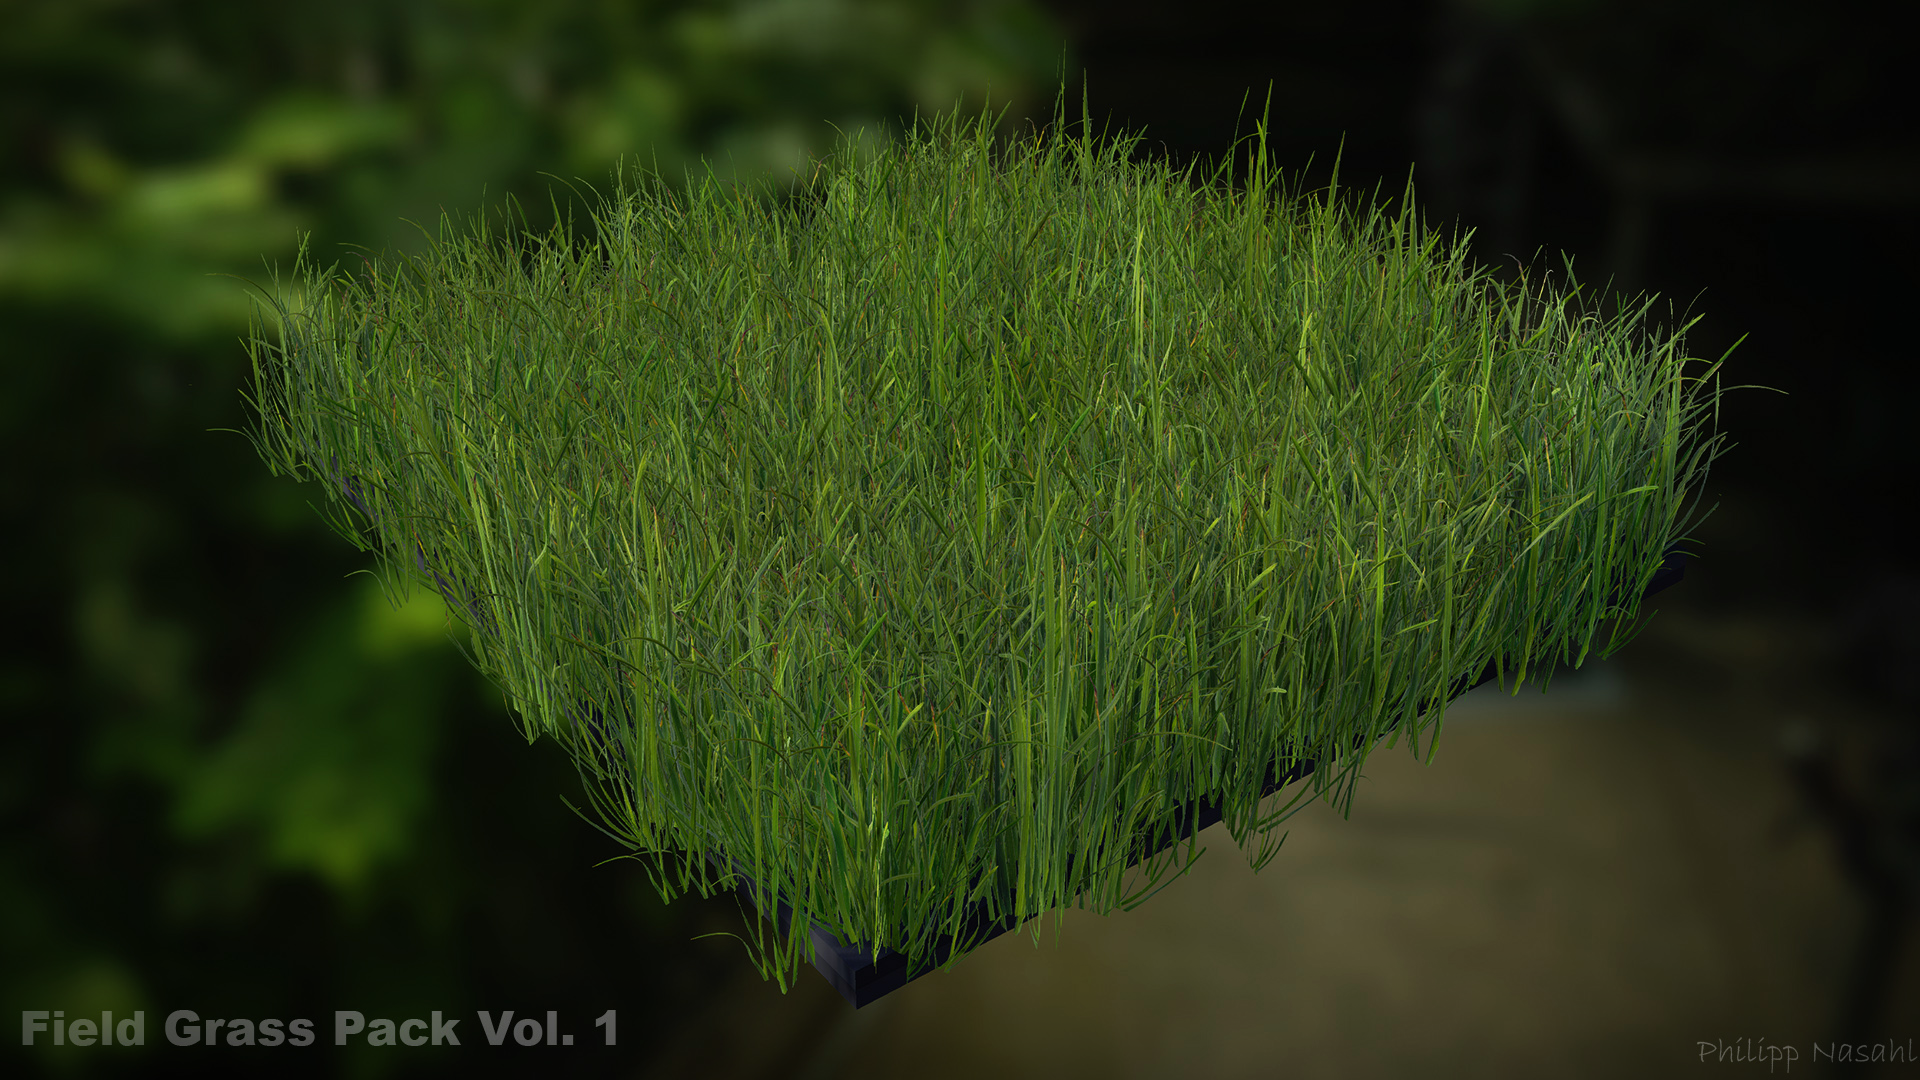 Field Grass Package Vol. 1 by Phillipp Nasahl